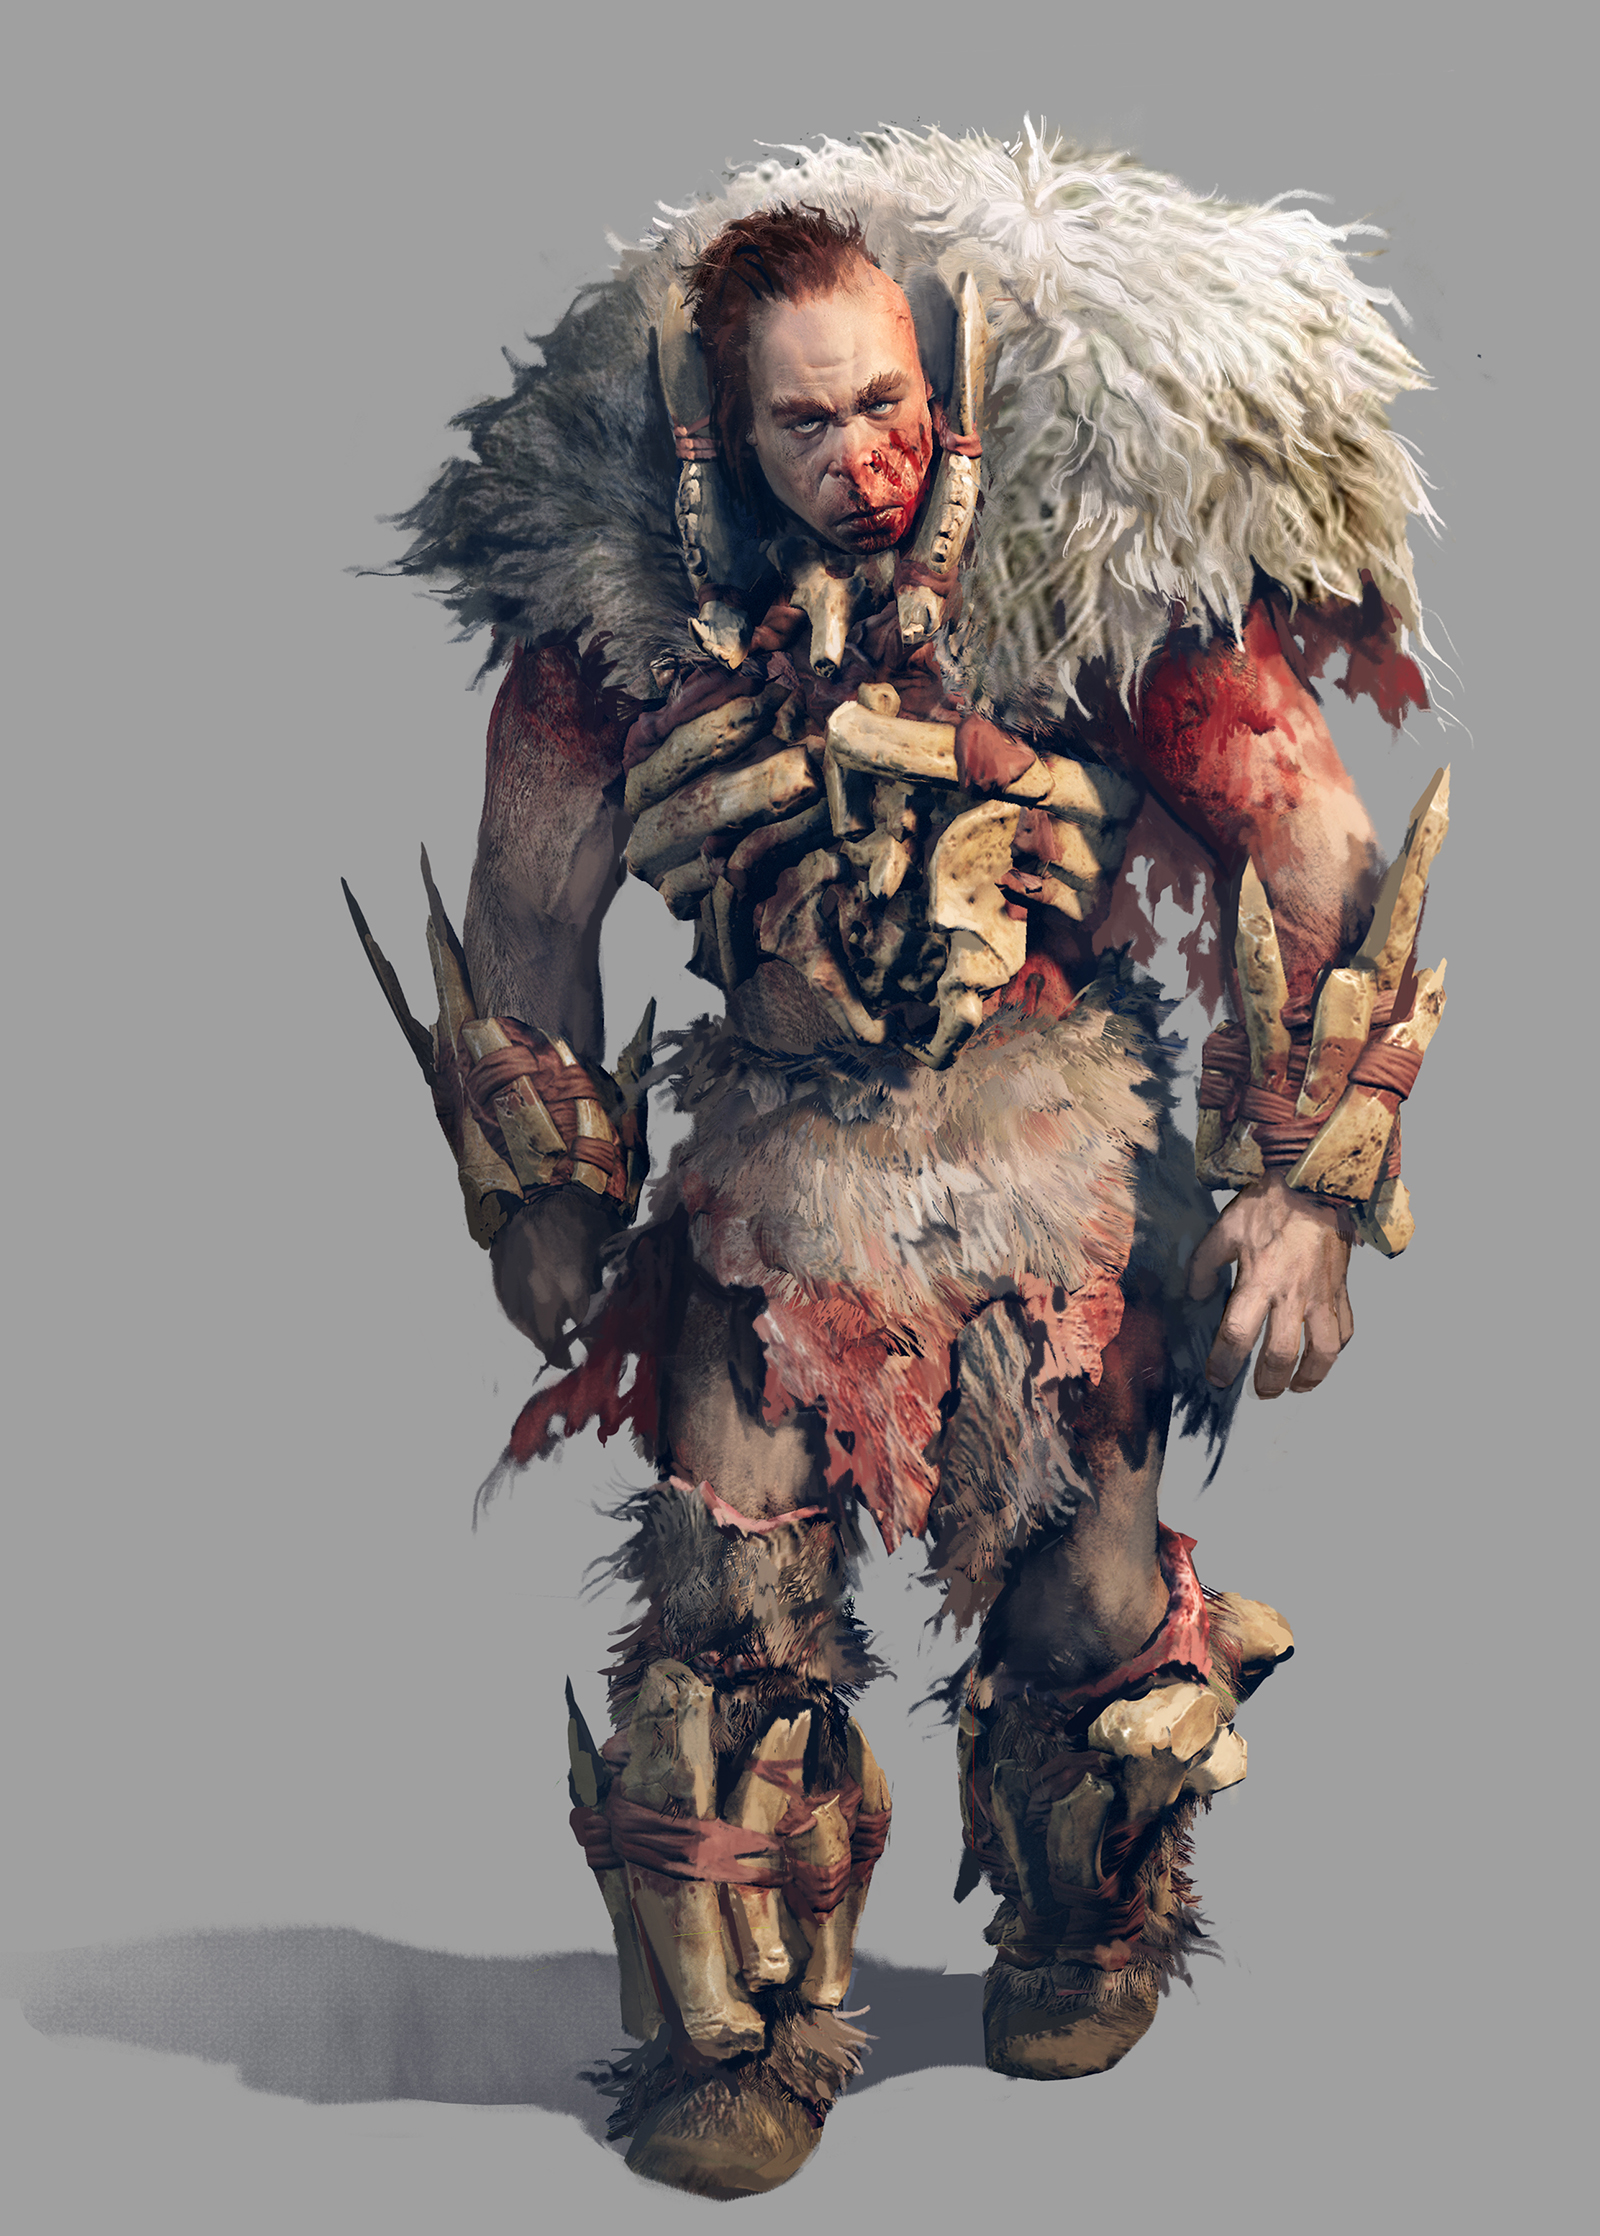 1453334425-far-cry-primal-3-ull-concept-pr-6pm-cet.jpg